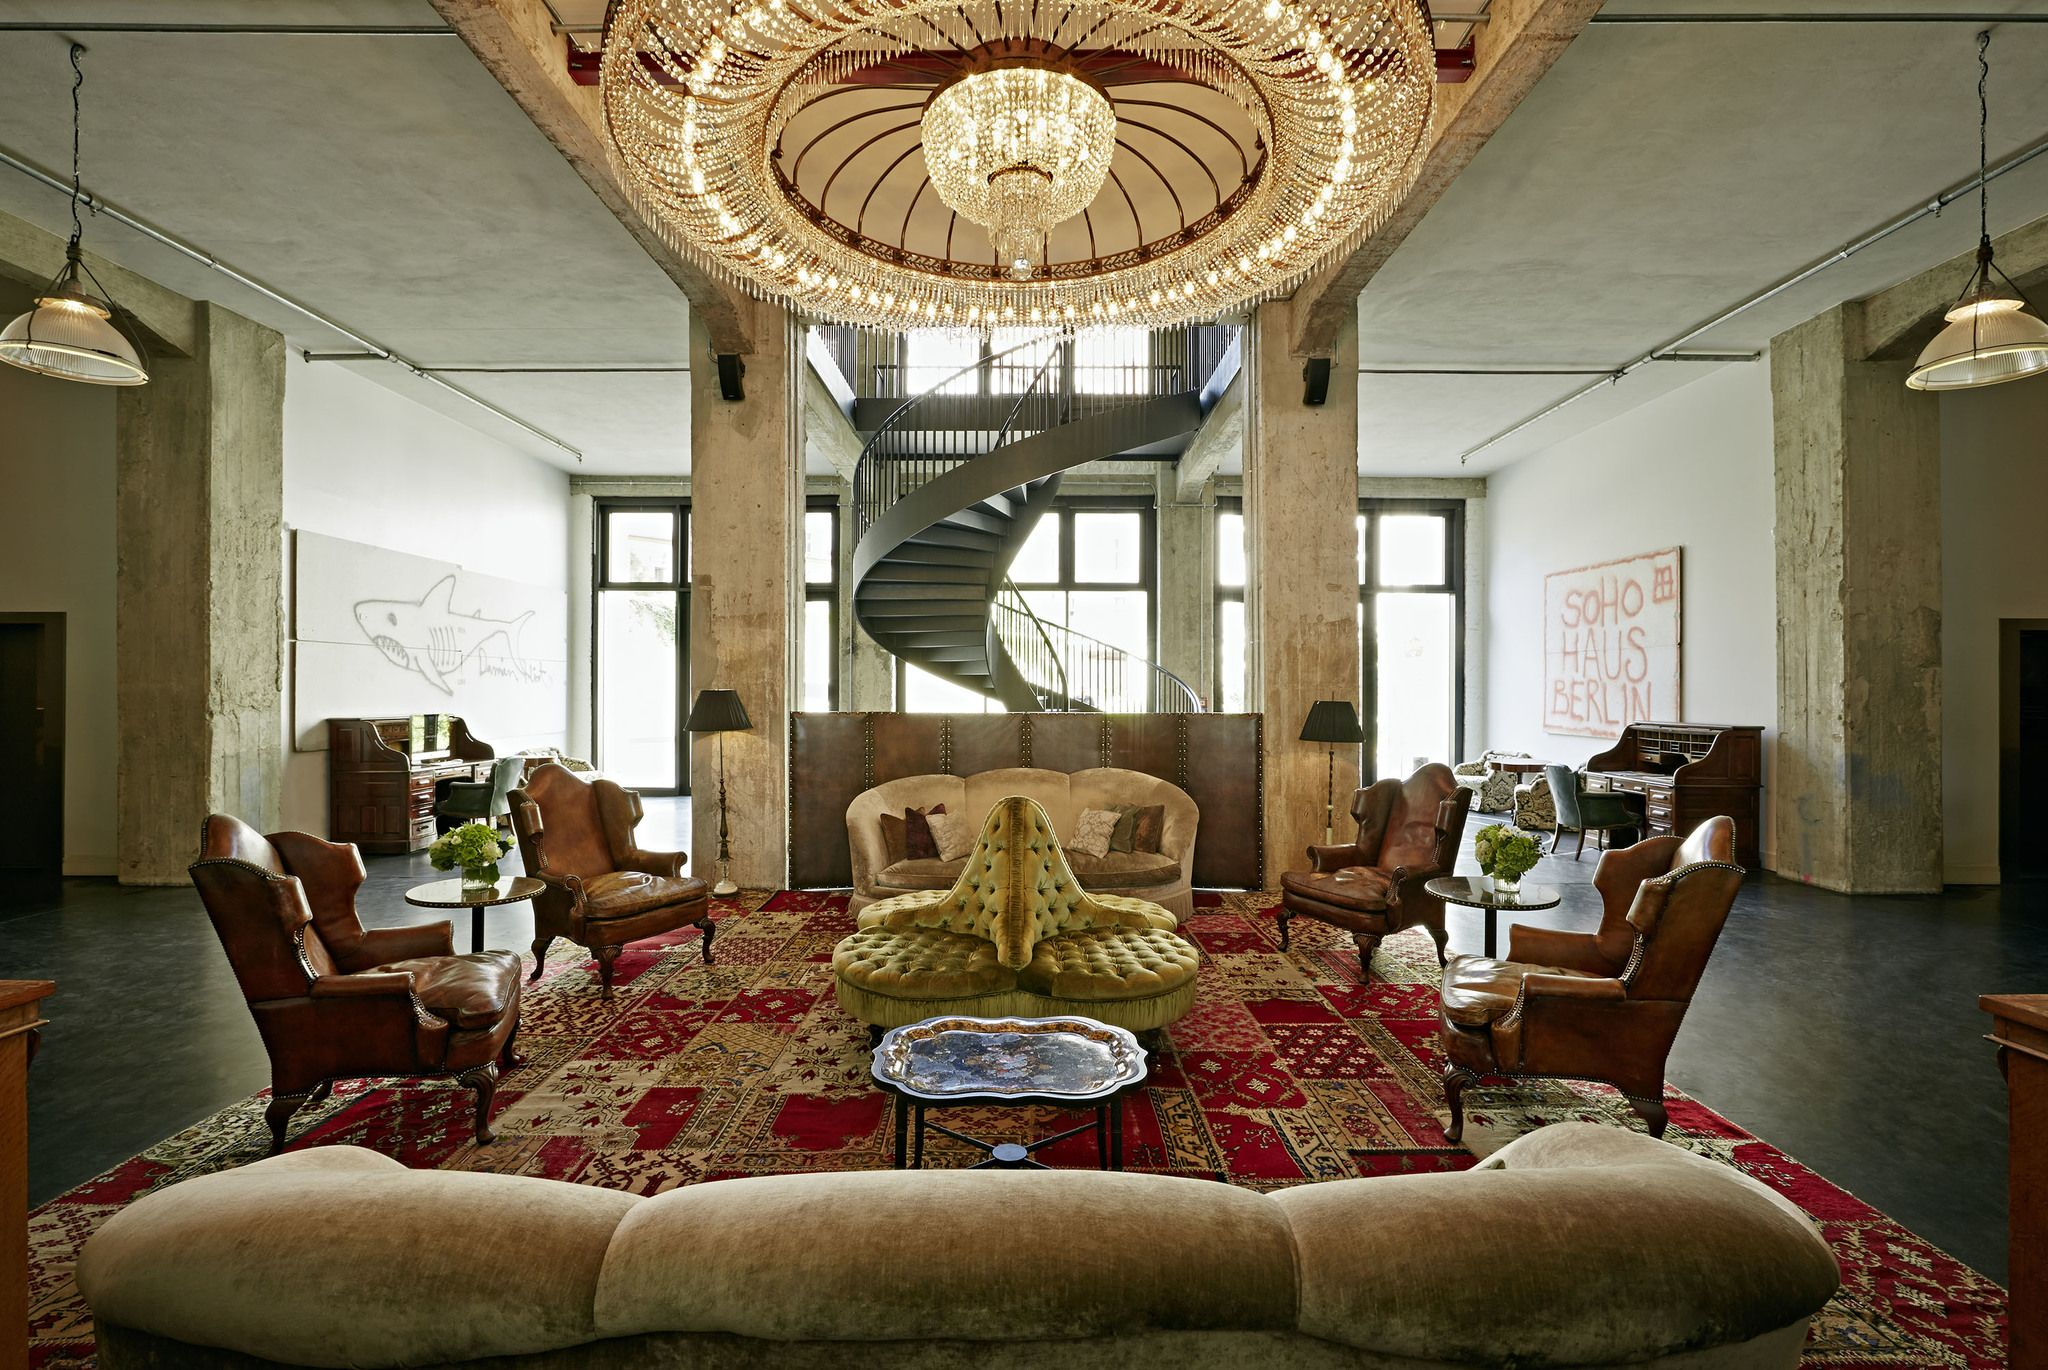 From fashion art design and lifestyle semaine is the place to discover and shop soho house berlin lobby